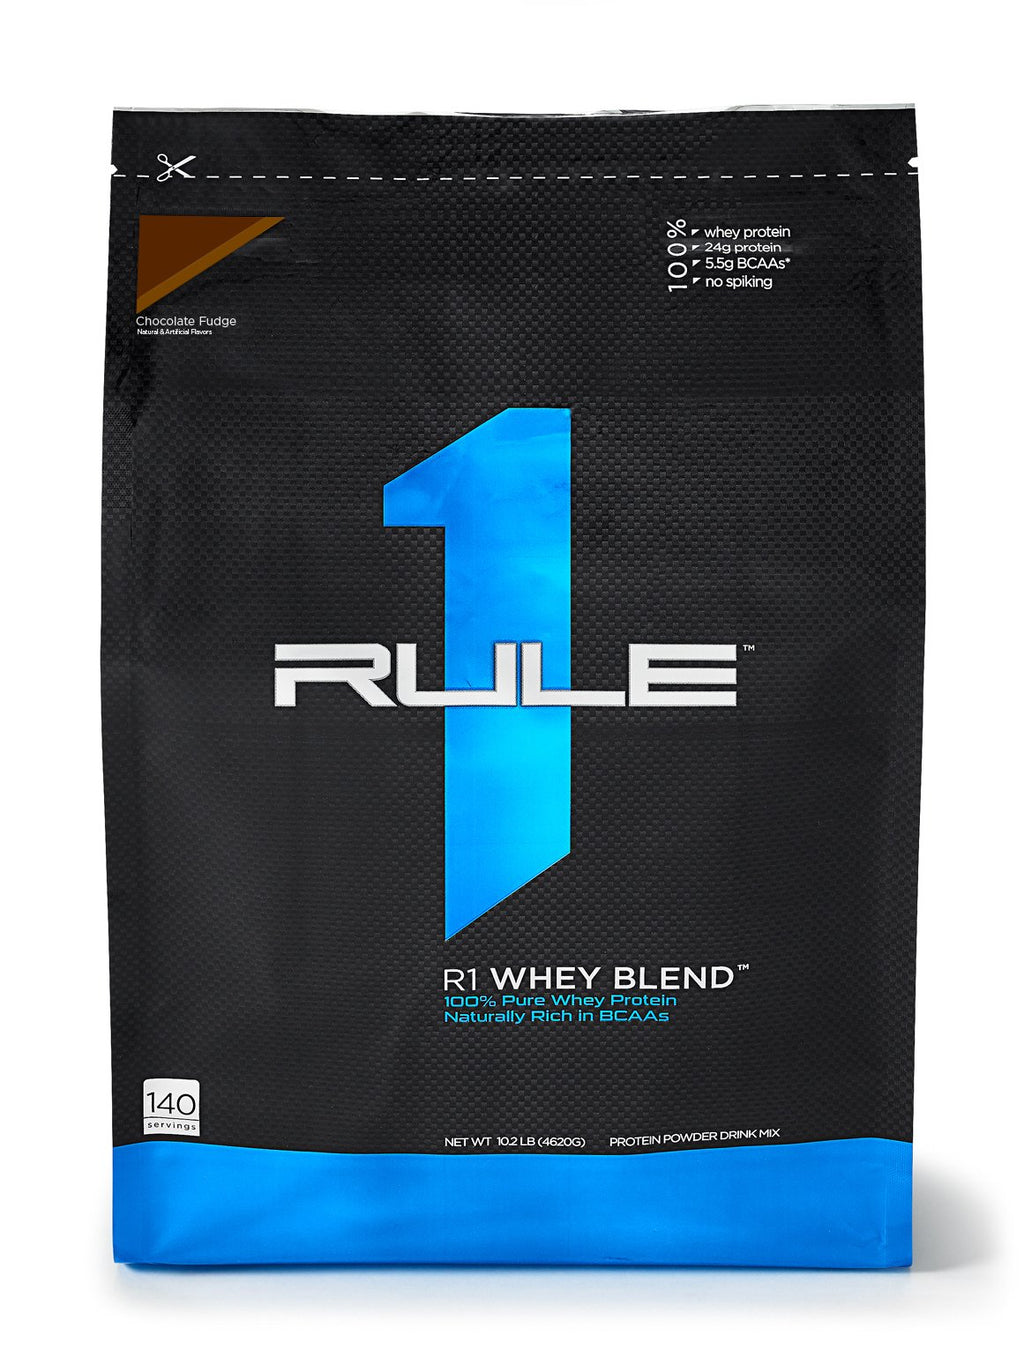 R1 Whey Blend, 140 Servings  - 10.5 lbs